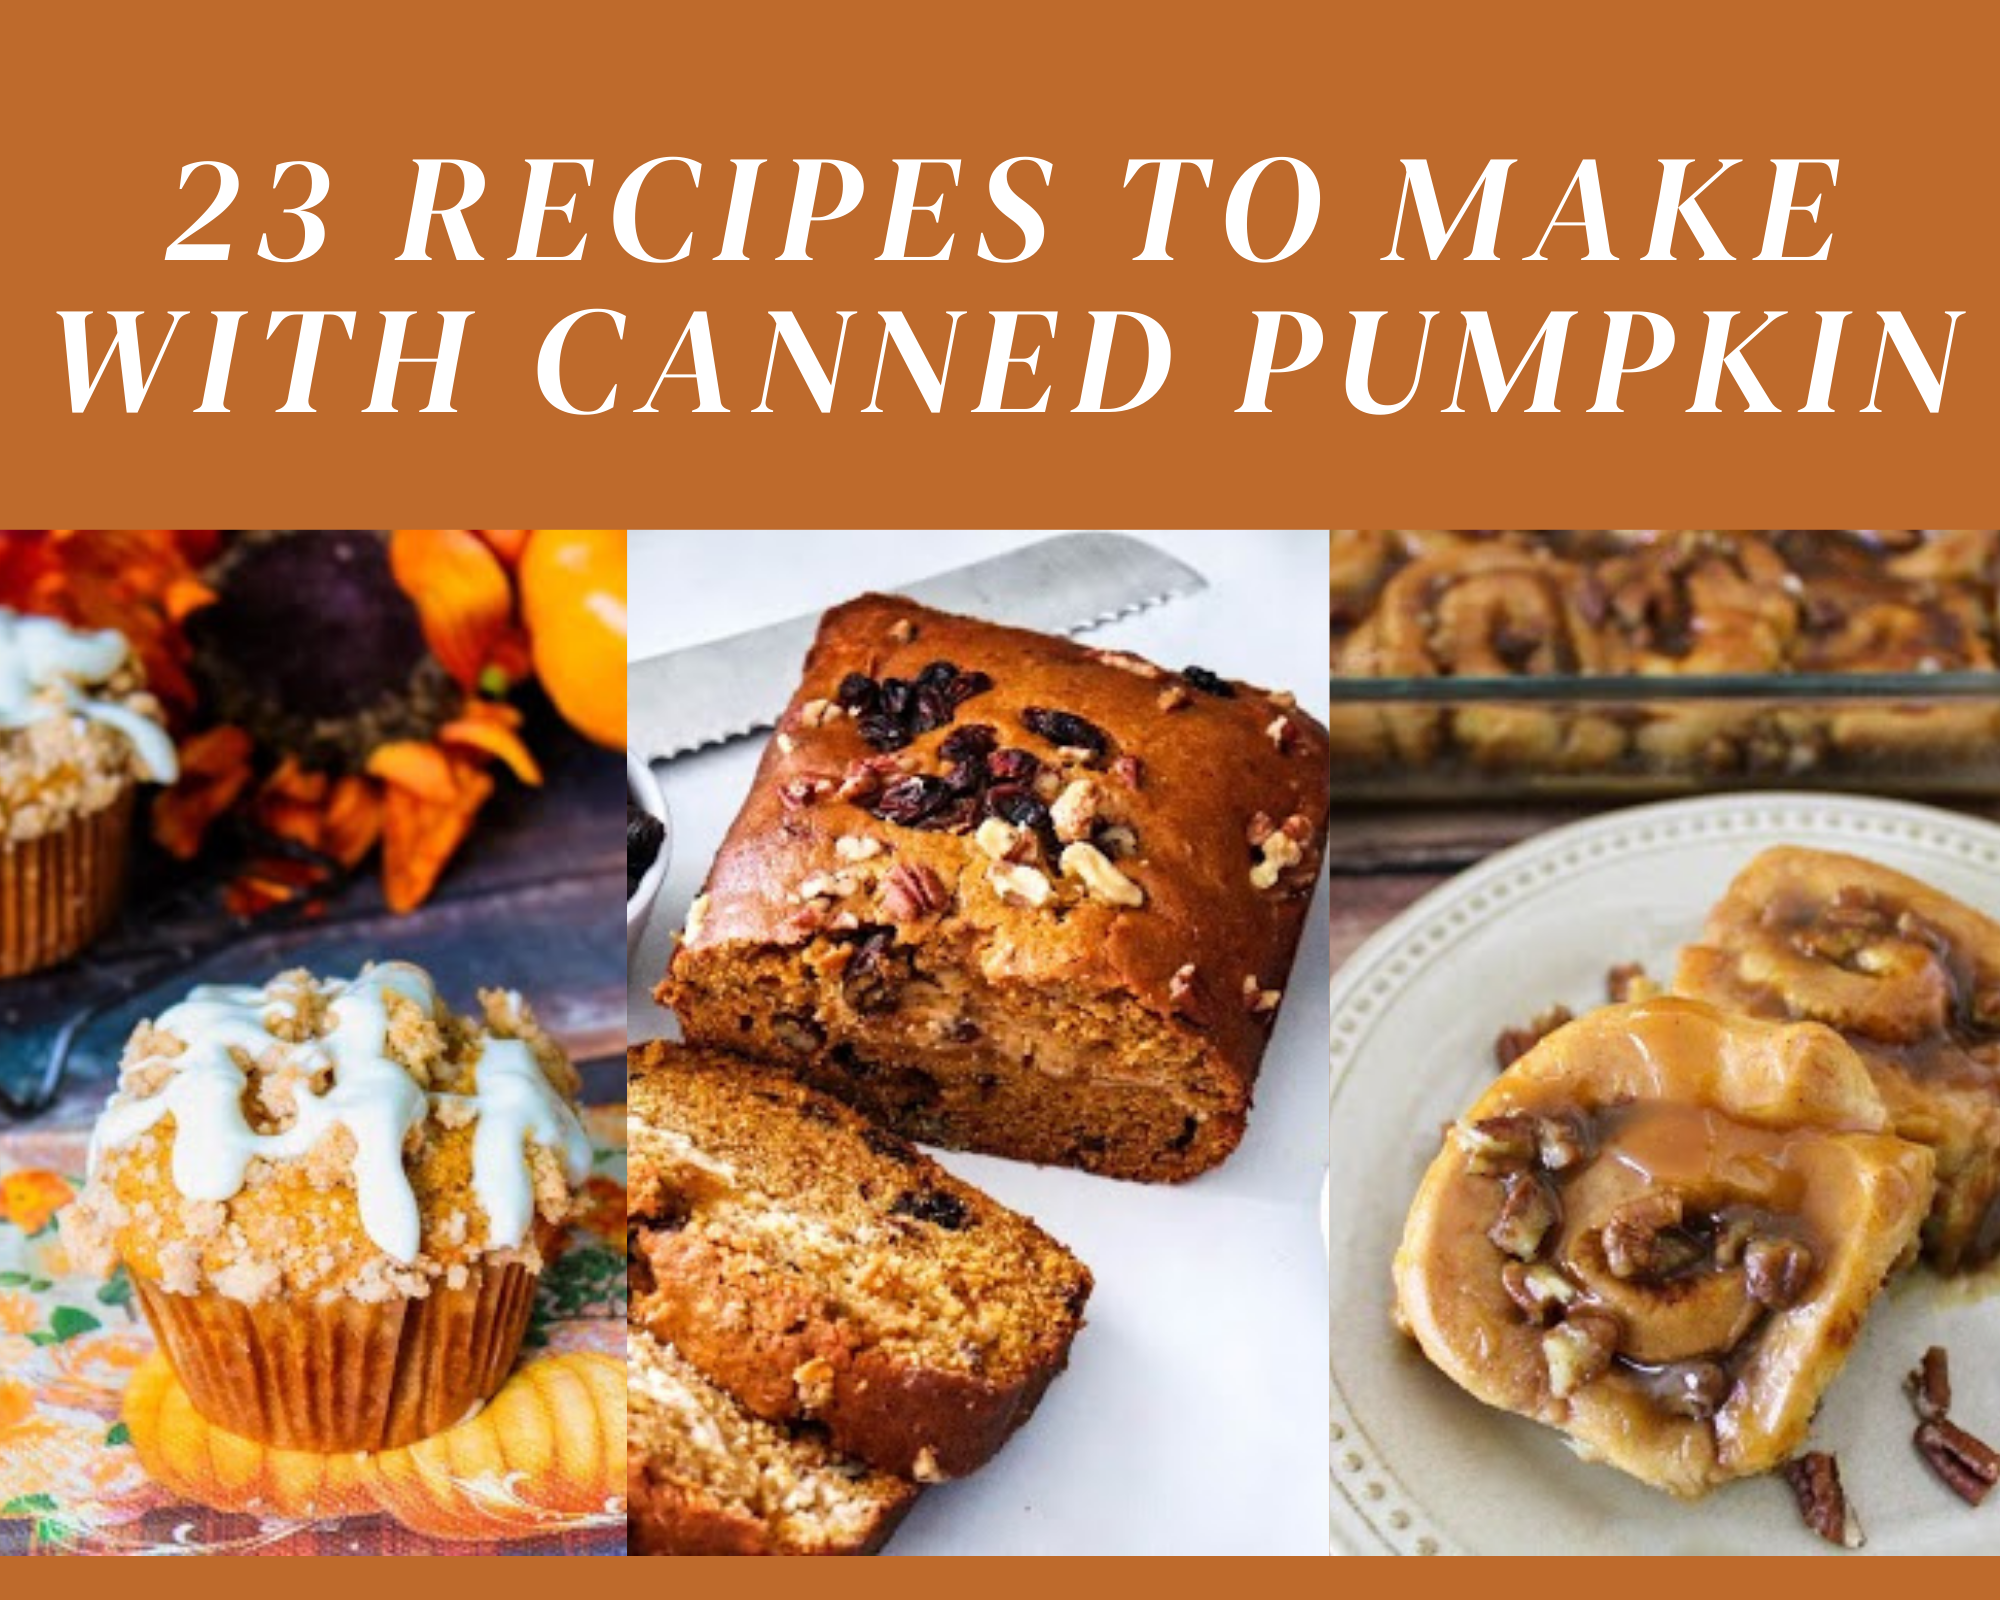 pumpkin muffins, pumpkin bread and pumpkin sweet rolls